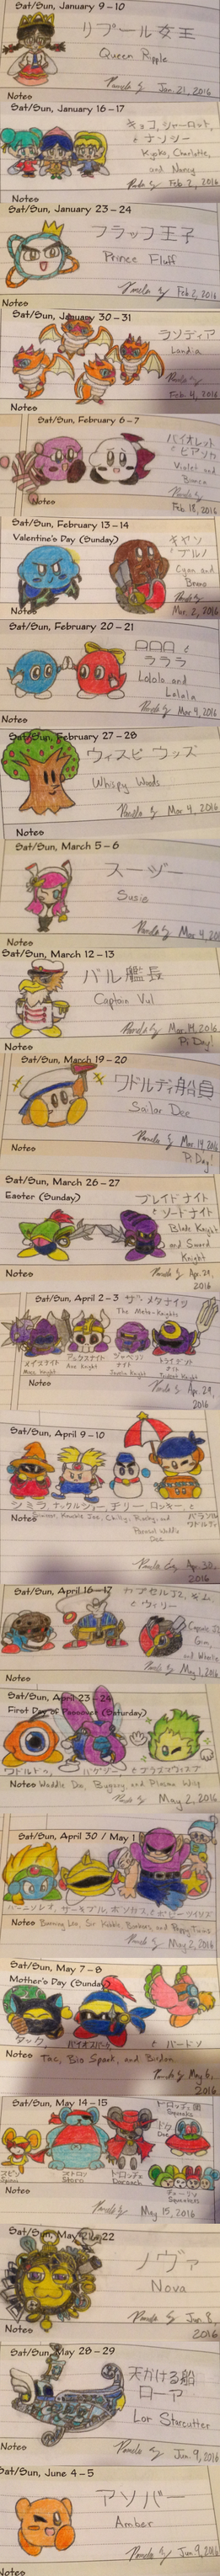 Weekly Kirby Doodles, Part 2 by Pokemario6456